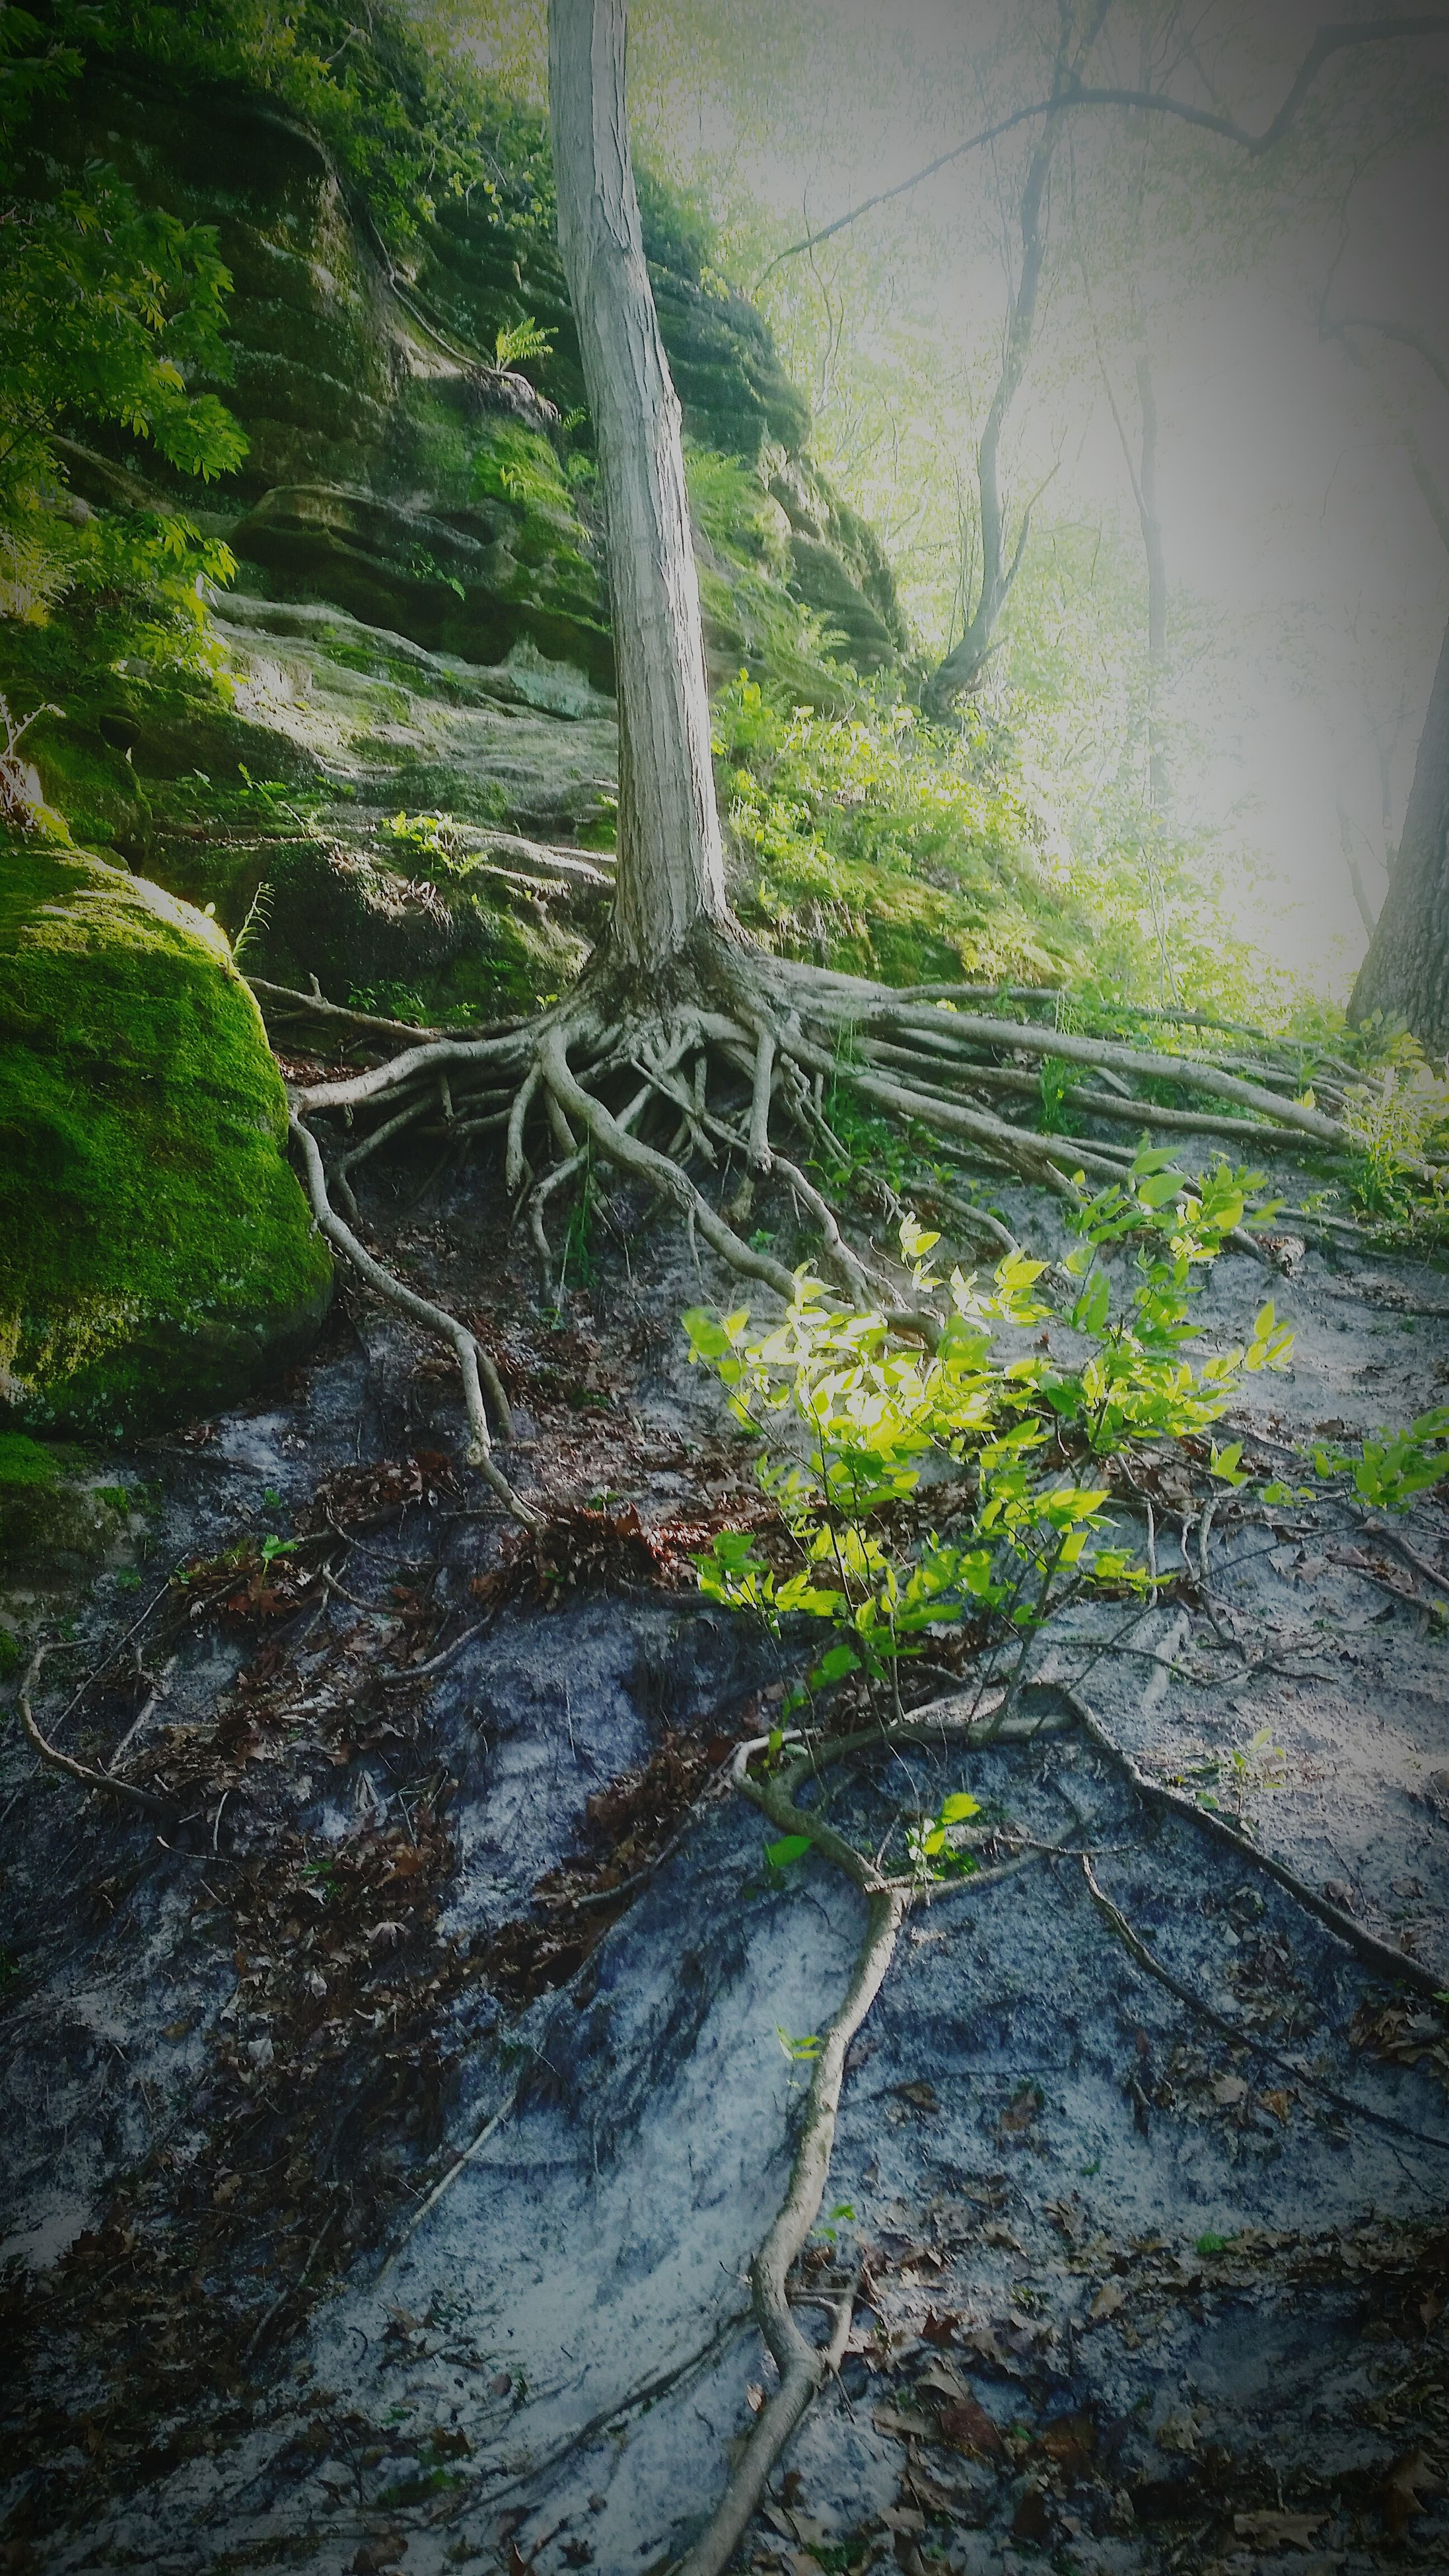 tree, nature, forest, tranquility, day, tranquil scene, beauty in nature, tree trunk, no people, scenics, outdoors, branch, moss, growth, landscape, water